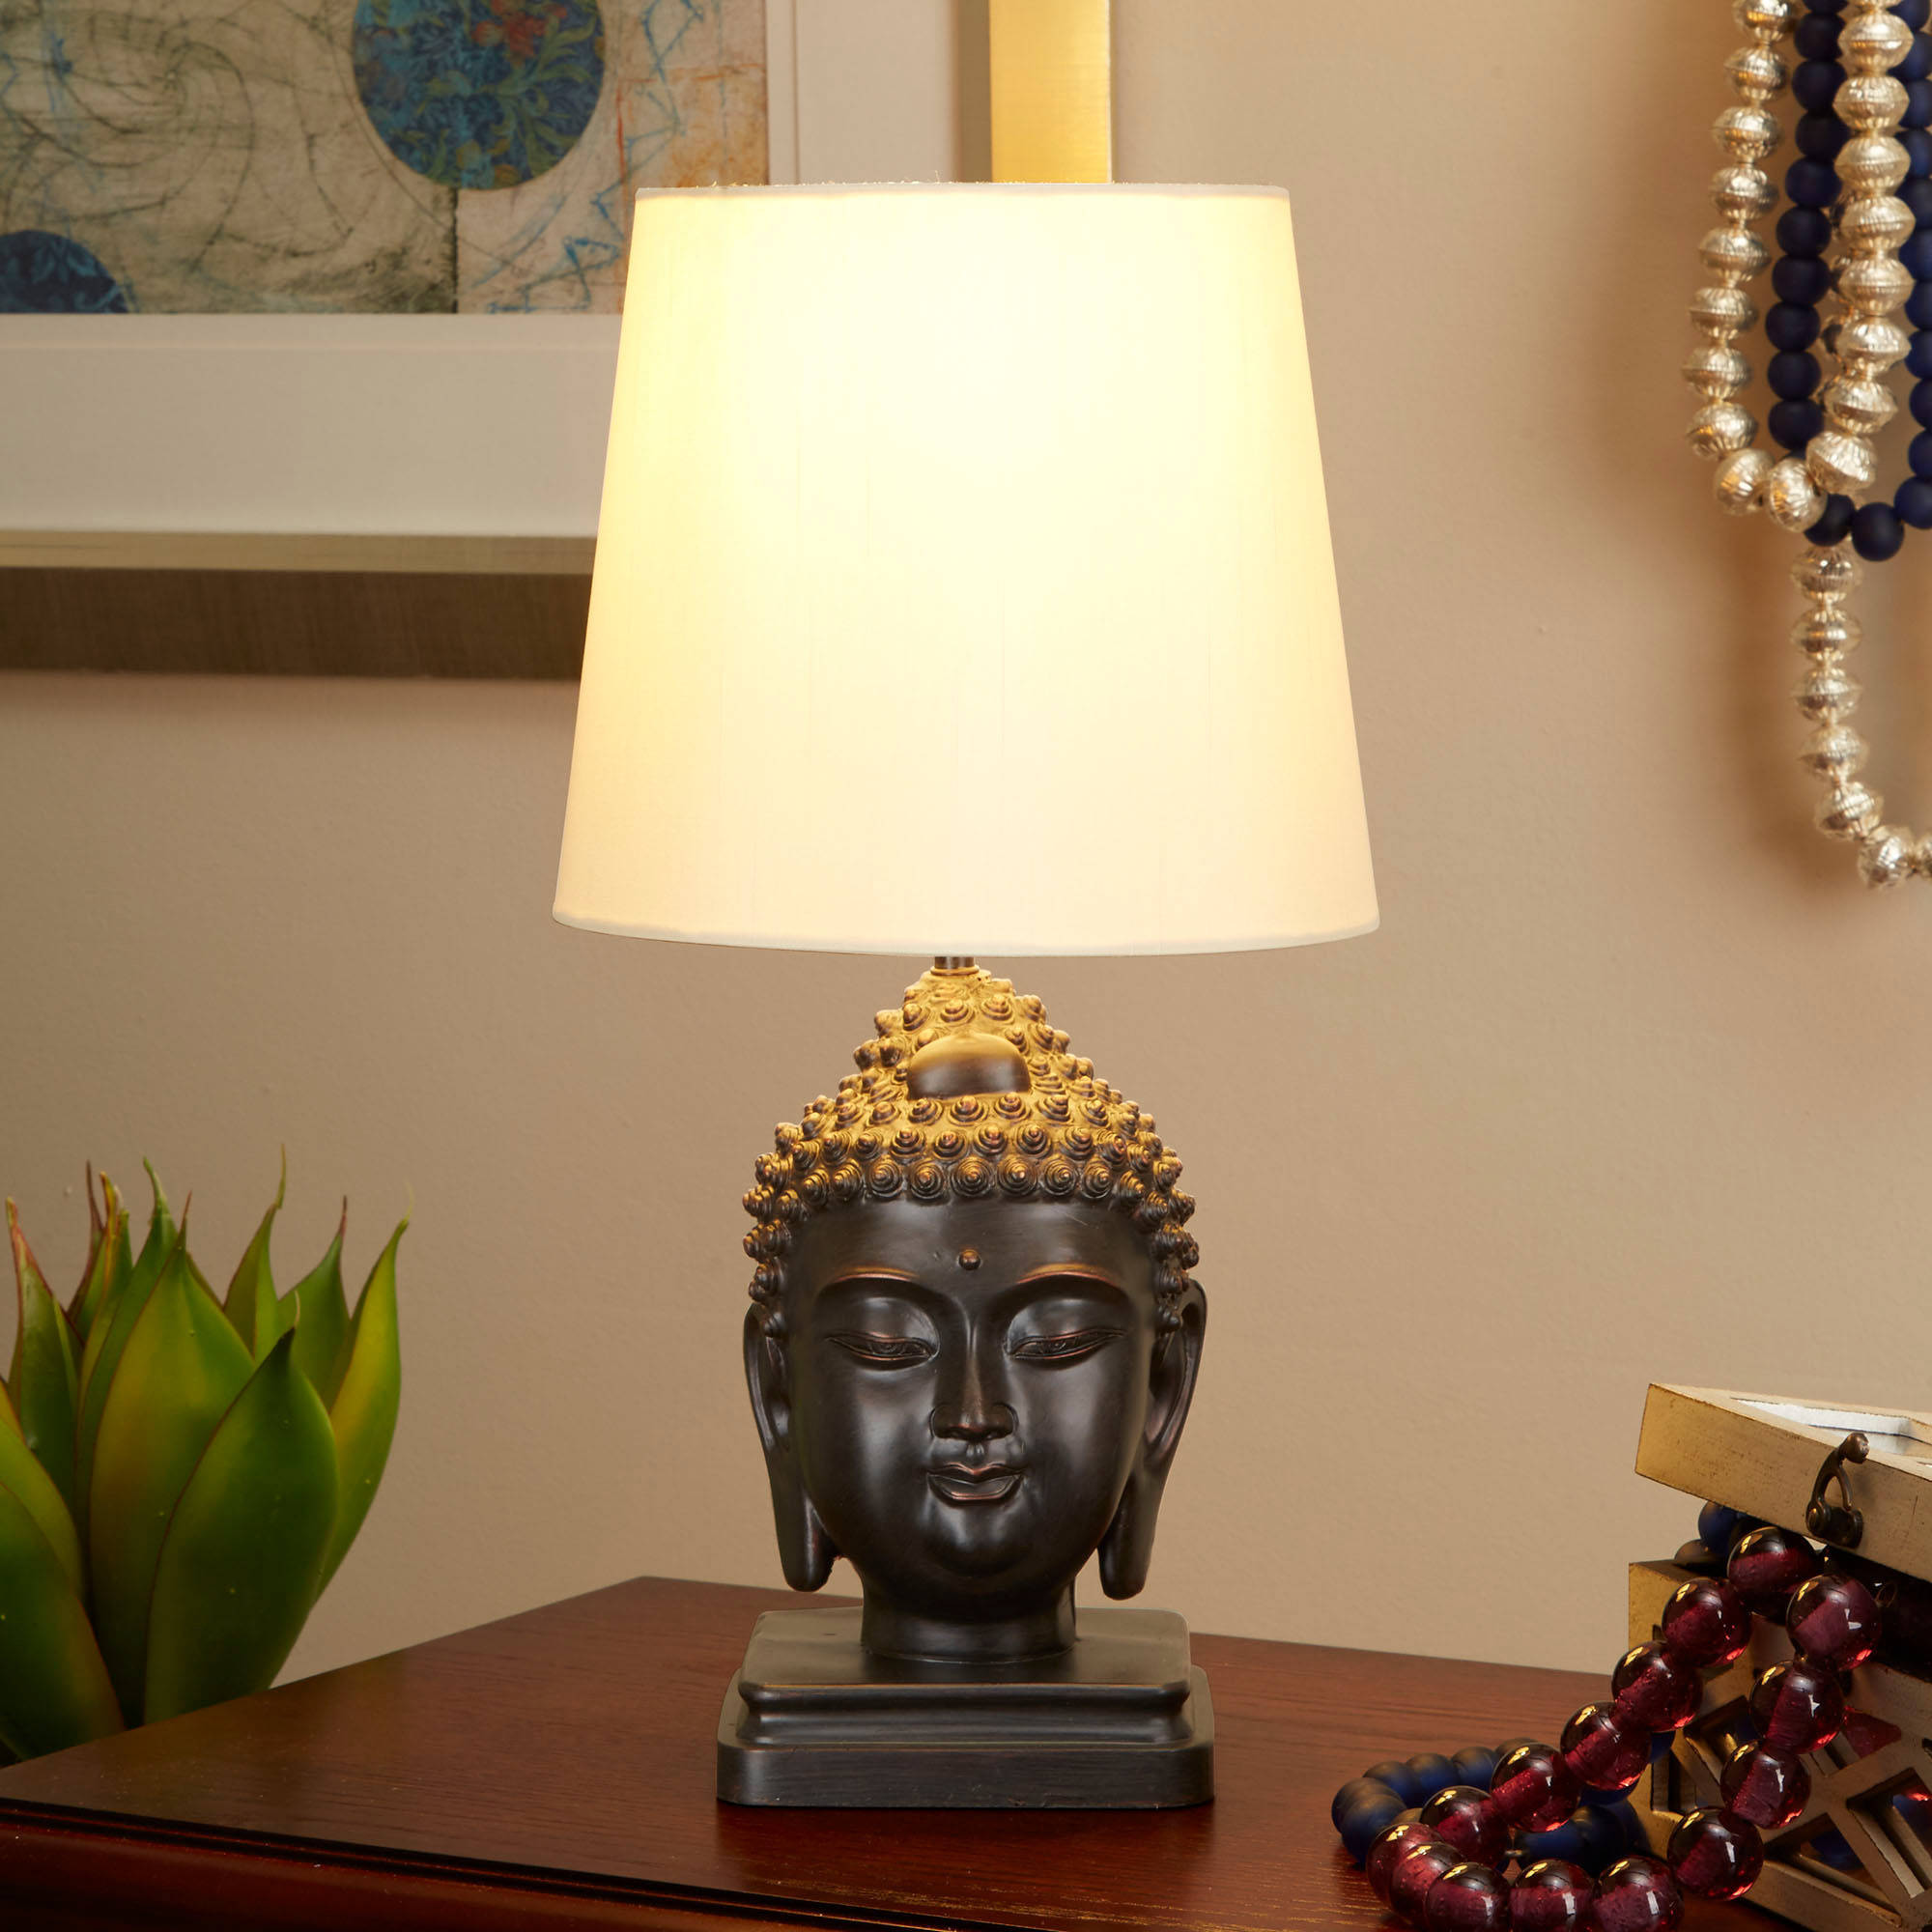 Better Homes And Gardens Buddha Table Lamp, Oil Rubbed Bronze   Walmart.com